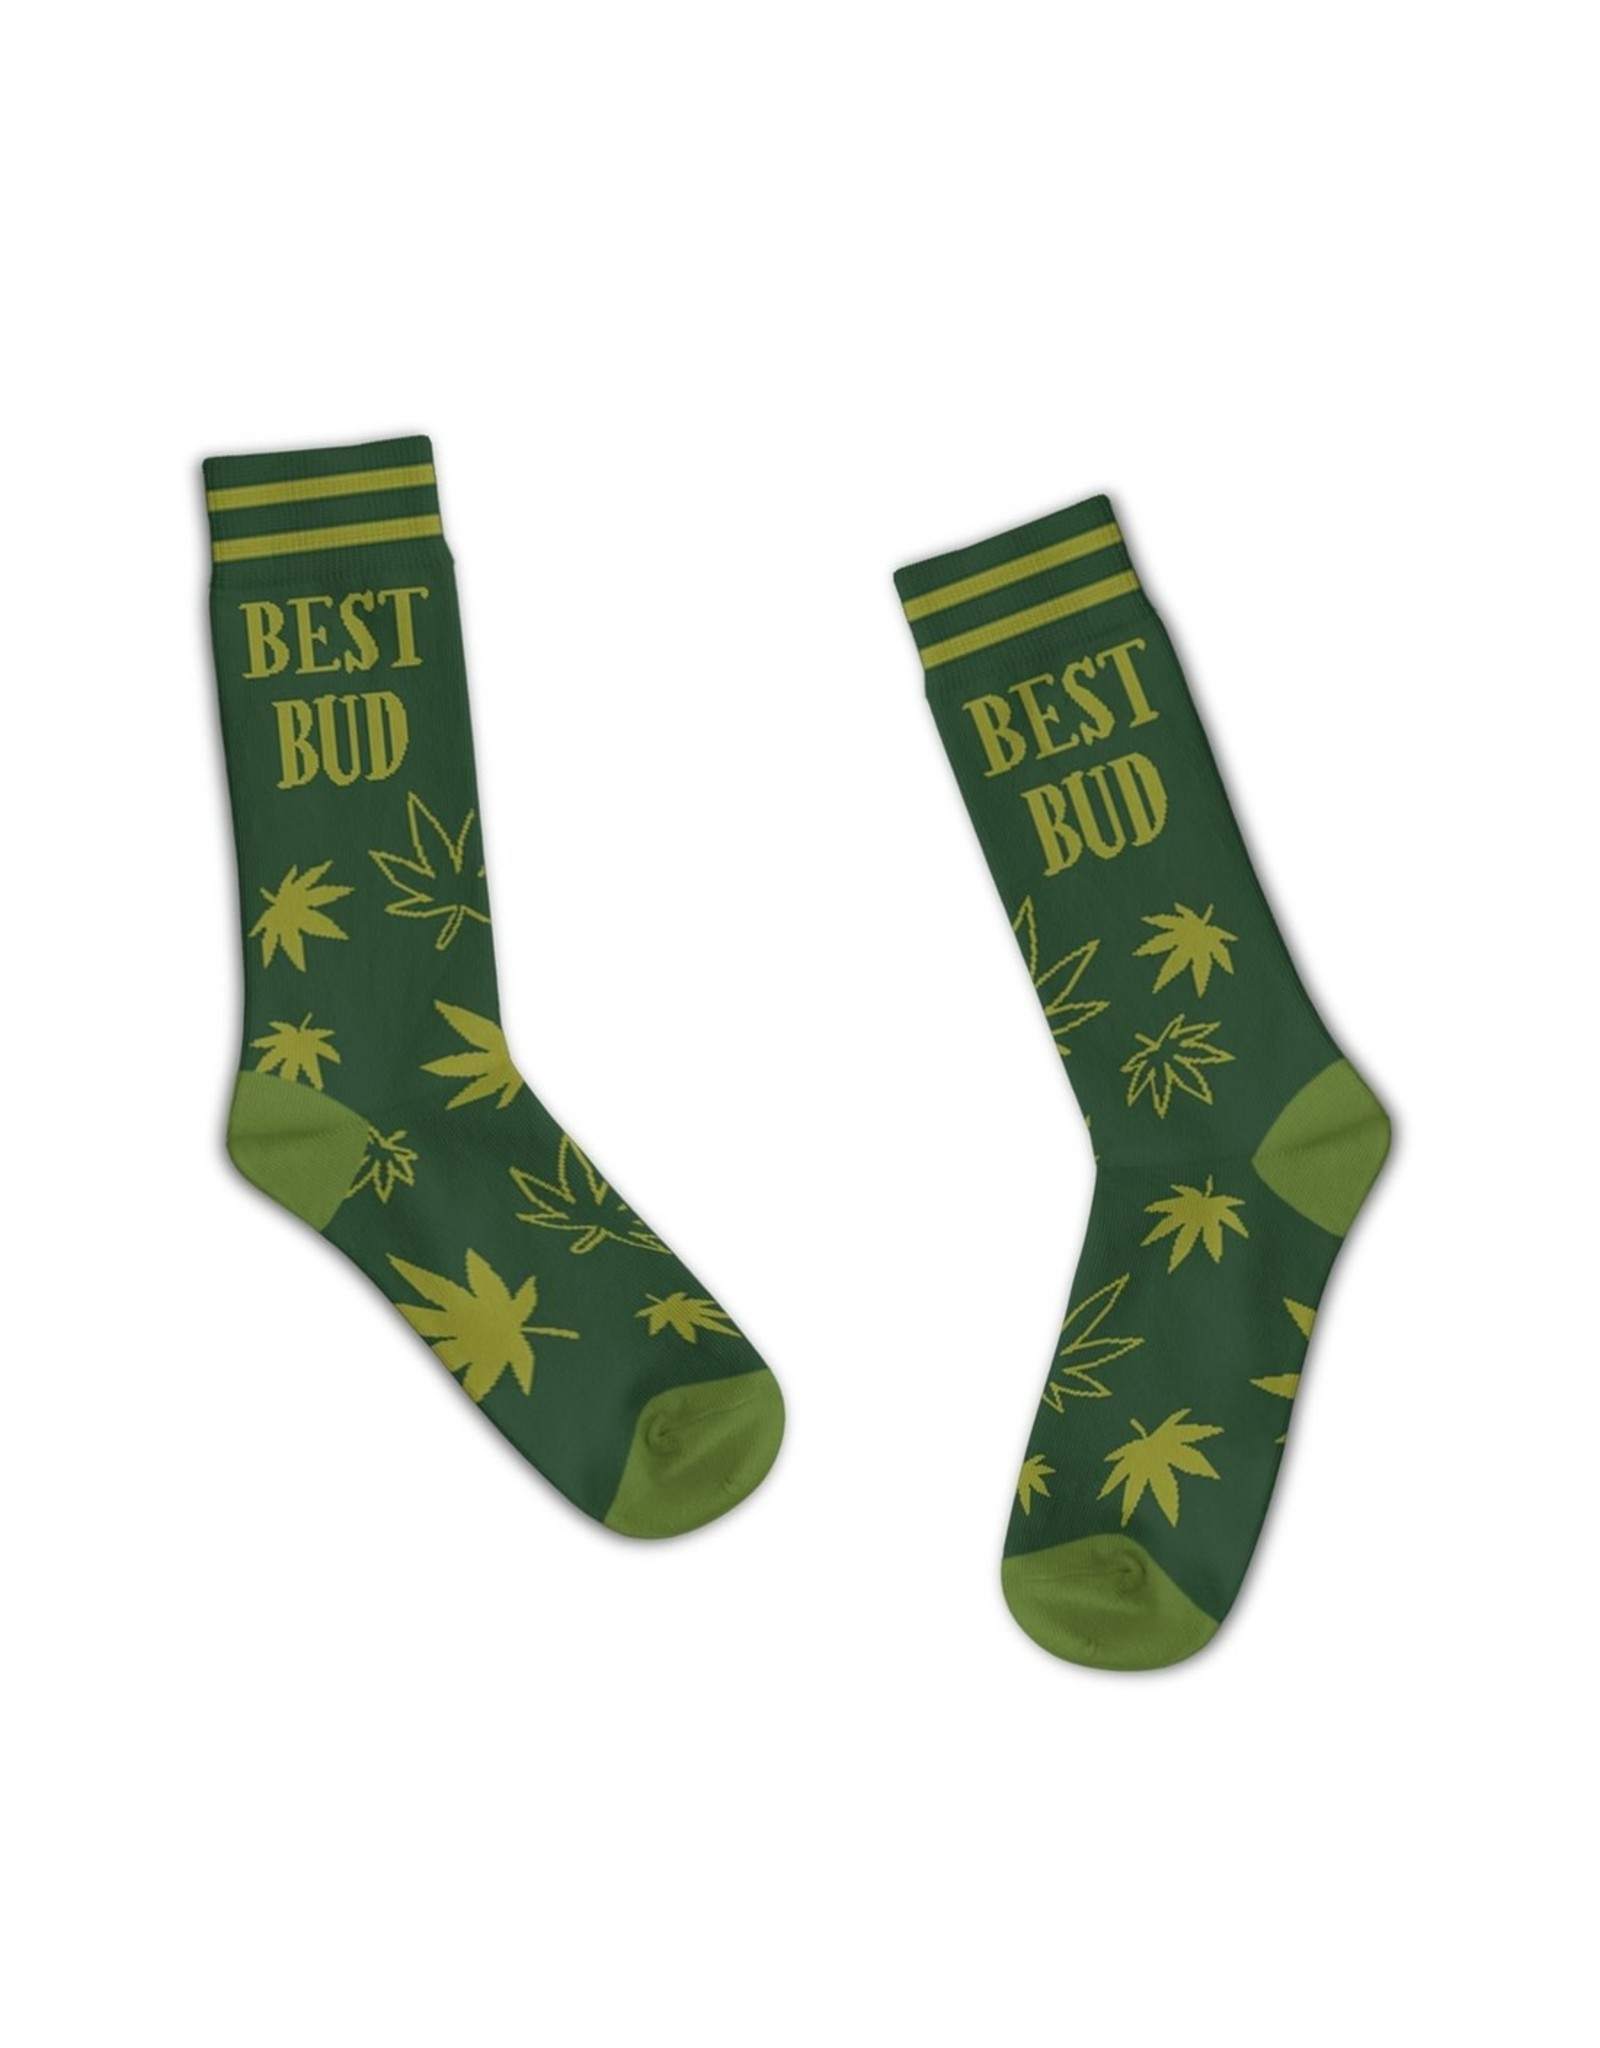 Socks (Unisex) - Best Bud Pot Leaf